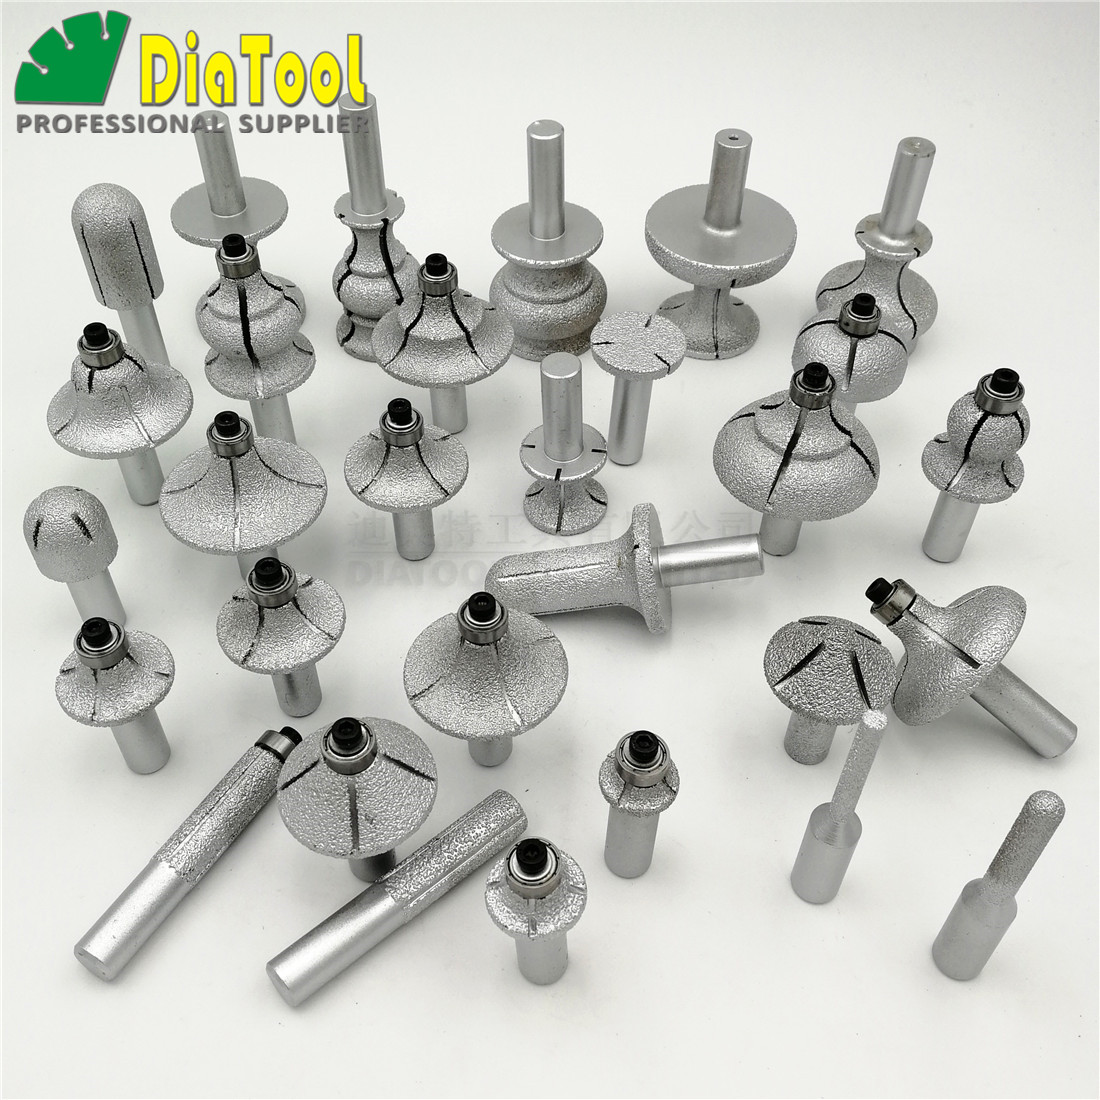 Hearty Shdiatool 1pc Vacuum Brazed Diamond Router Bits With 1/2 Shank For Stone Router Cutter For Granite & Marble In Pain Tools